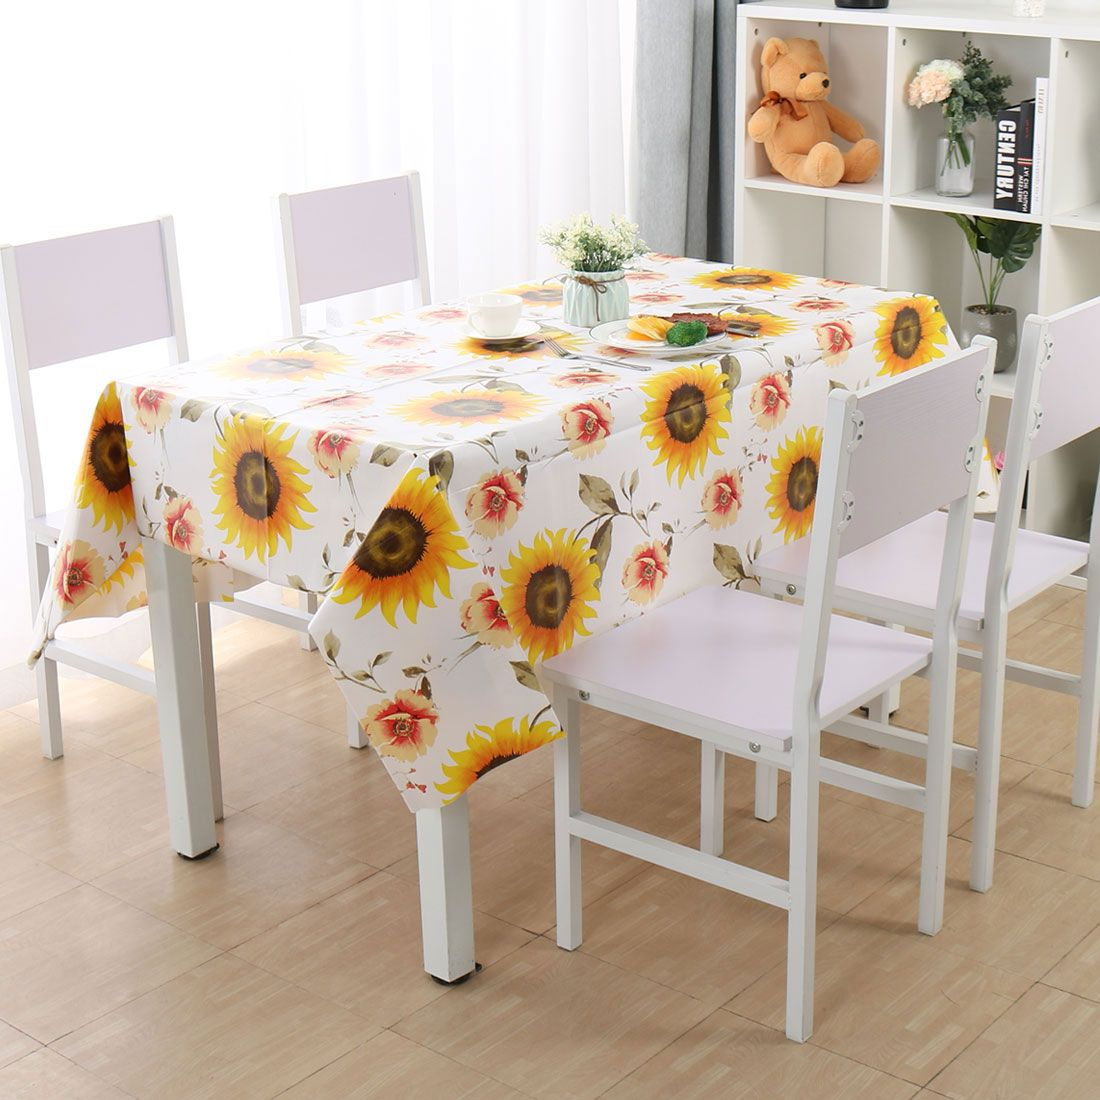 Wipe Clean Pvc Tablecloth Kitchen Cover Sunflower Pattern 55 X40 Bedding For Home Walmart Com In 2020 Wooden Dining Room Table Table Cloth Cleaning Wipes